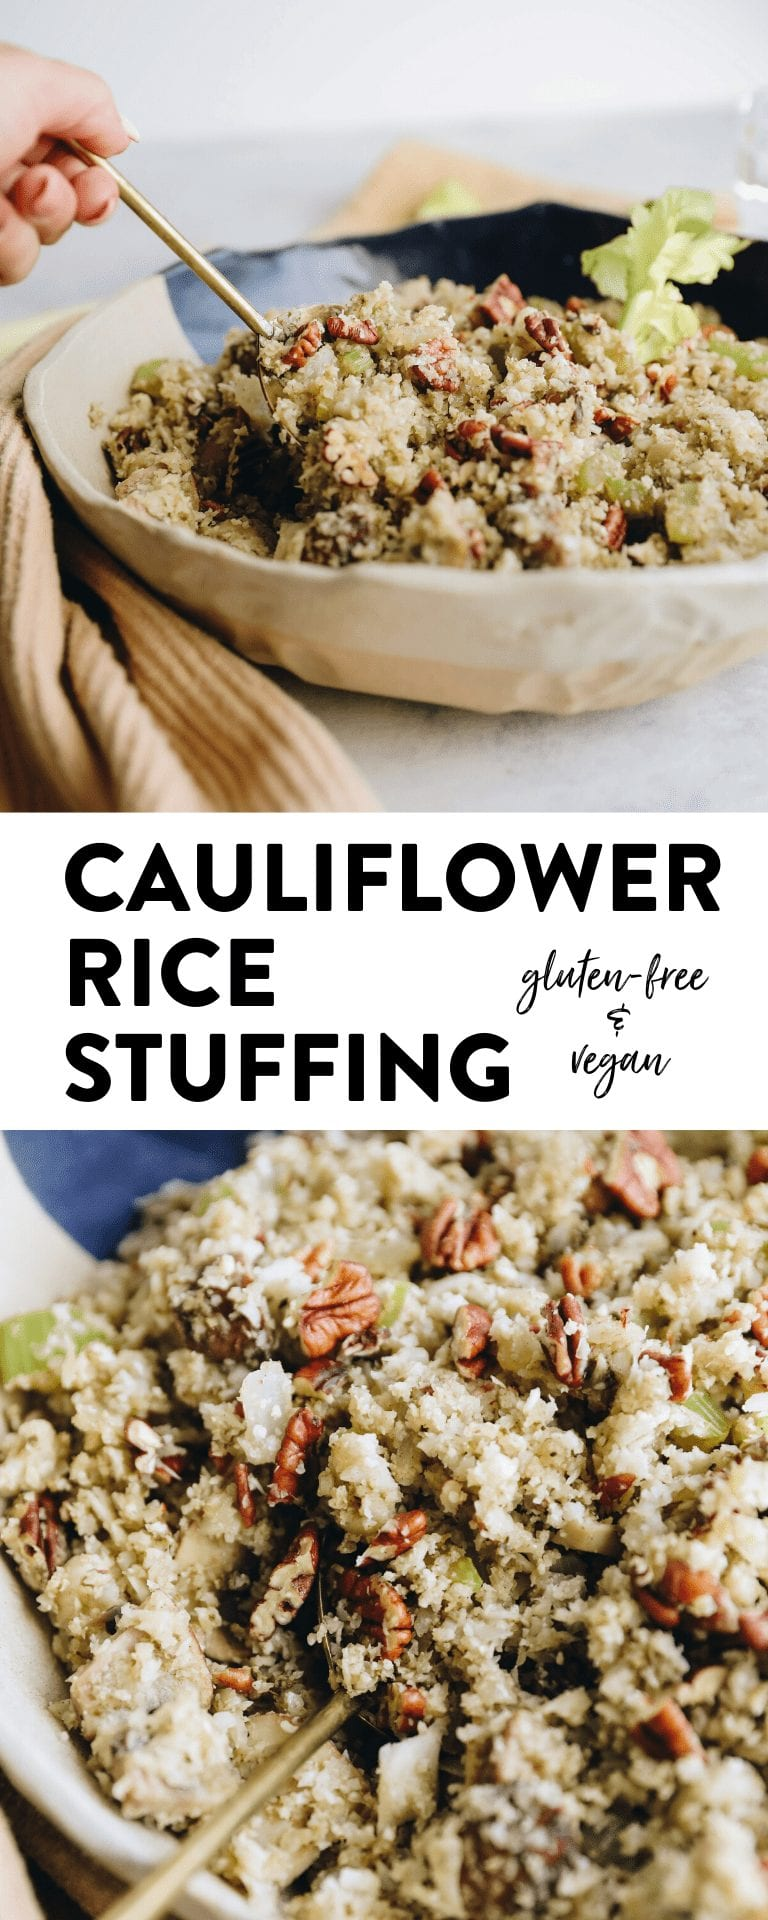 Cauliflower Stuffing for a healthy thanksgiving